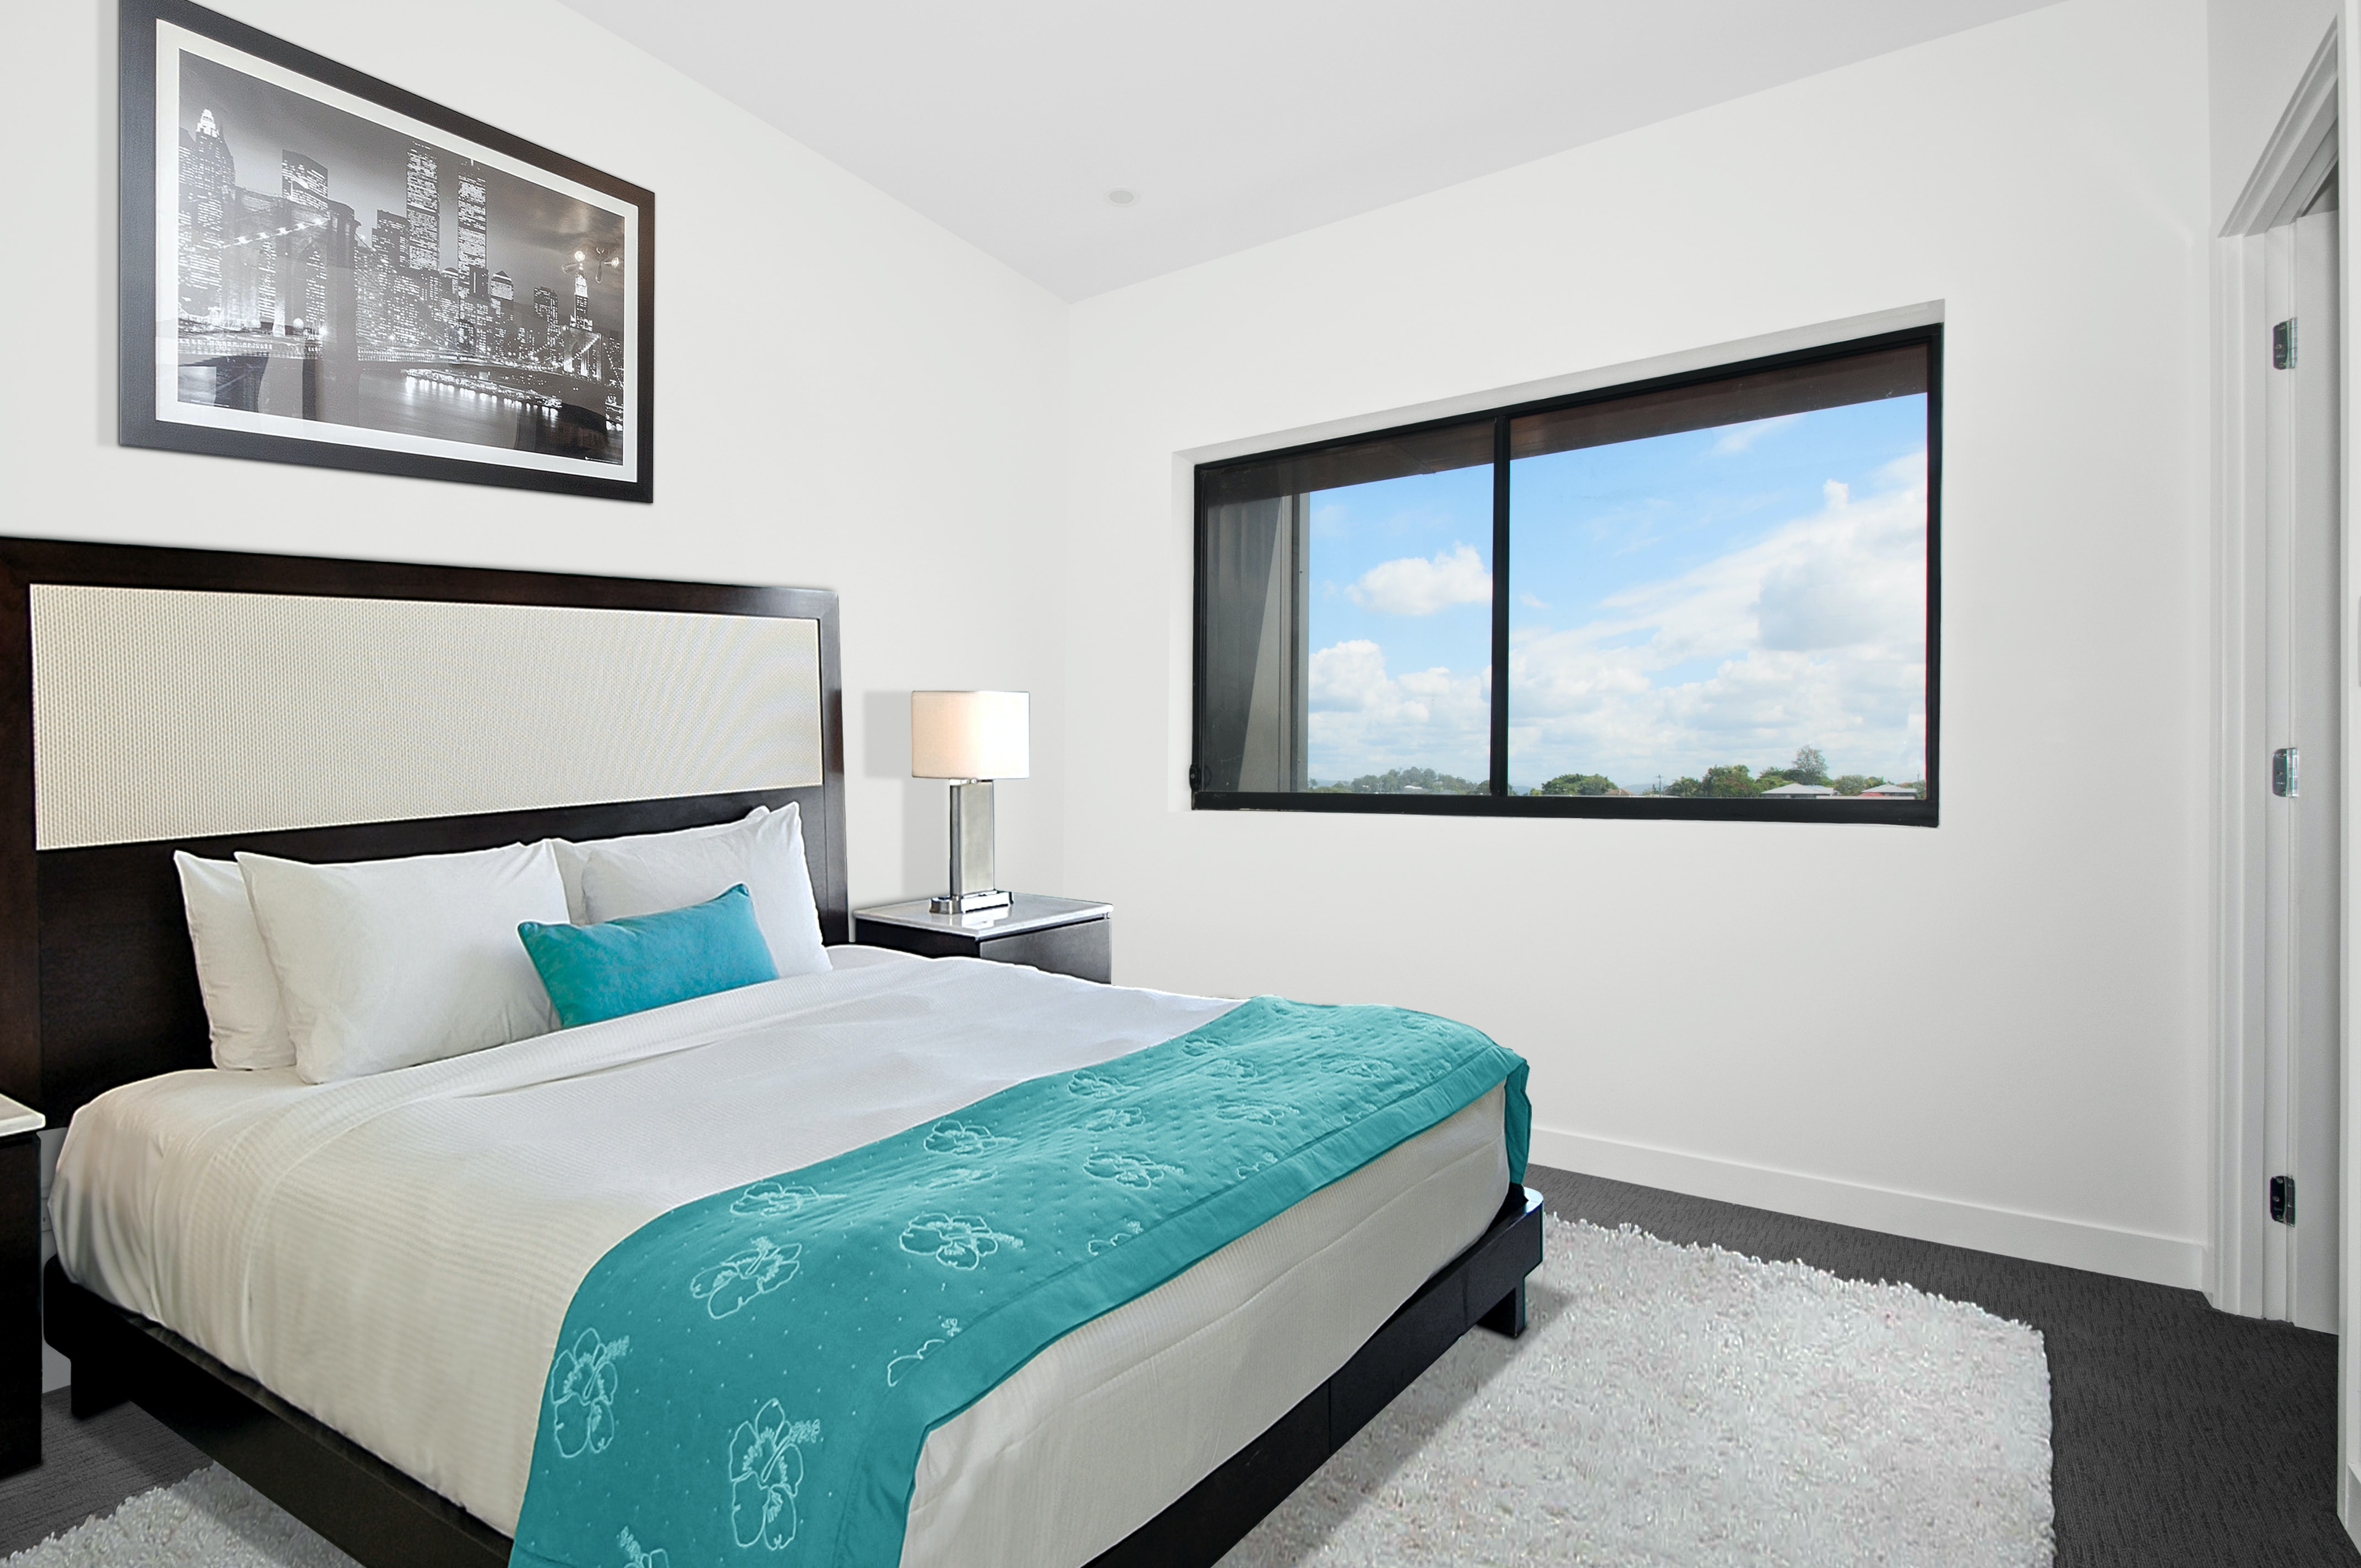 Sleep Better with a Clean Mattress's featured image